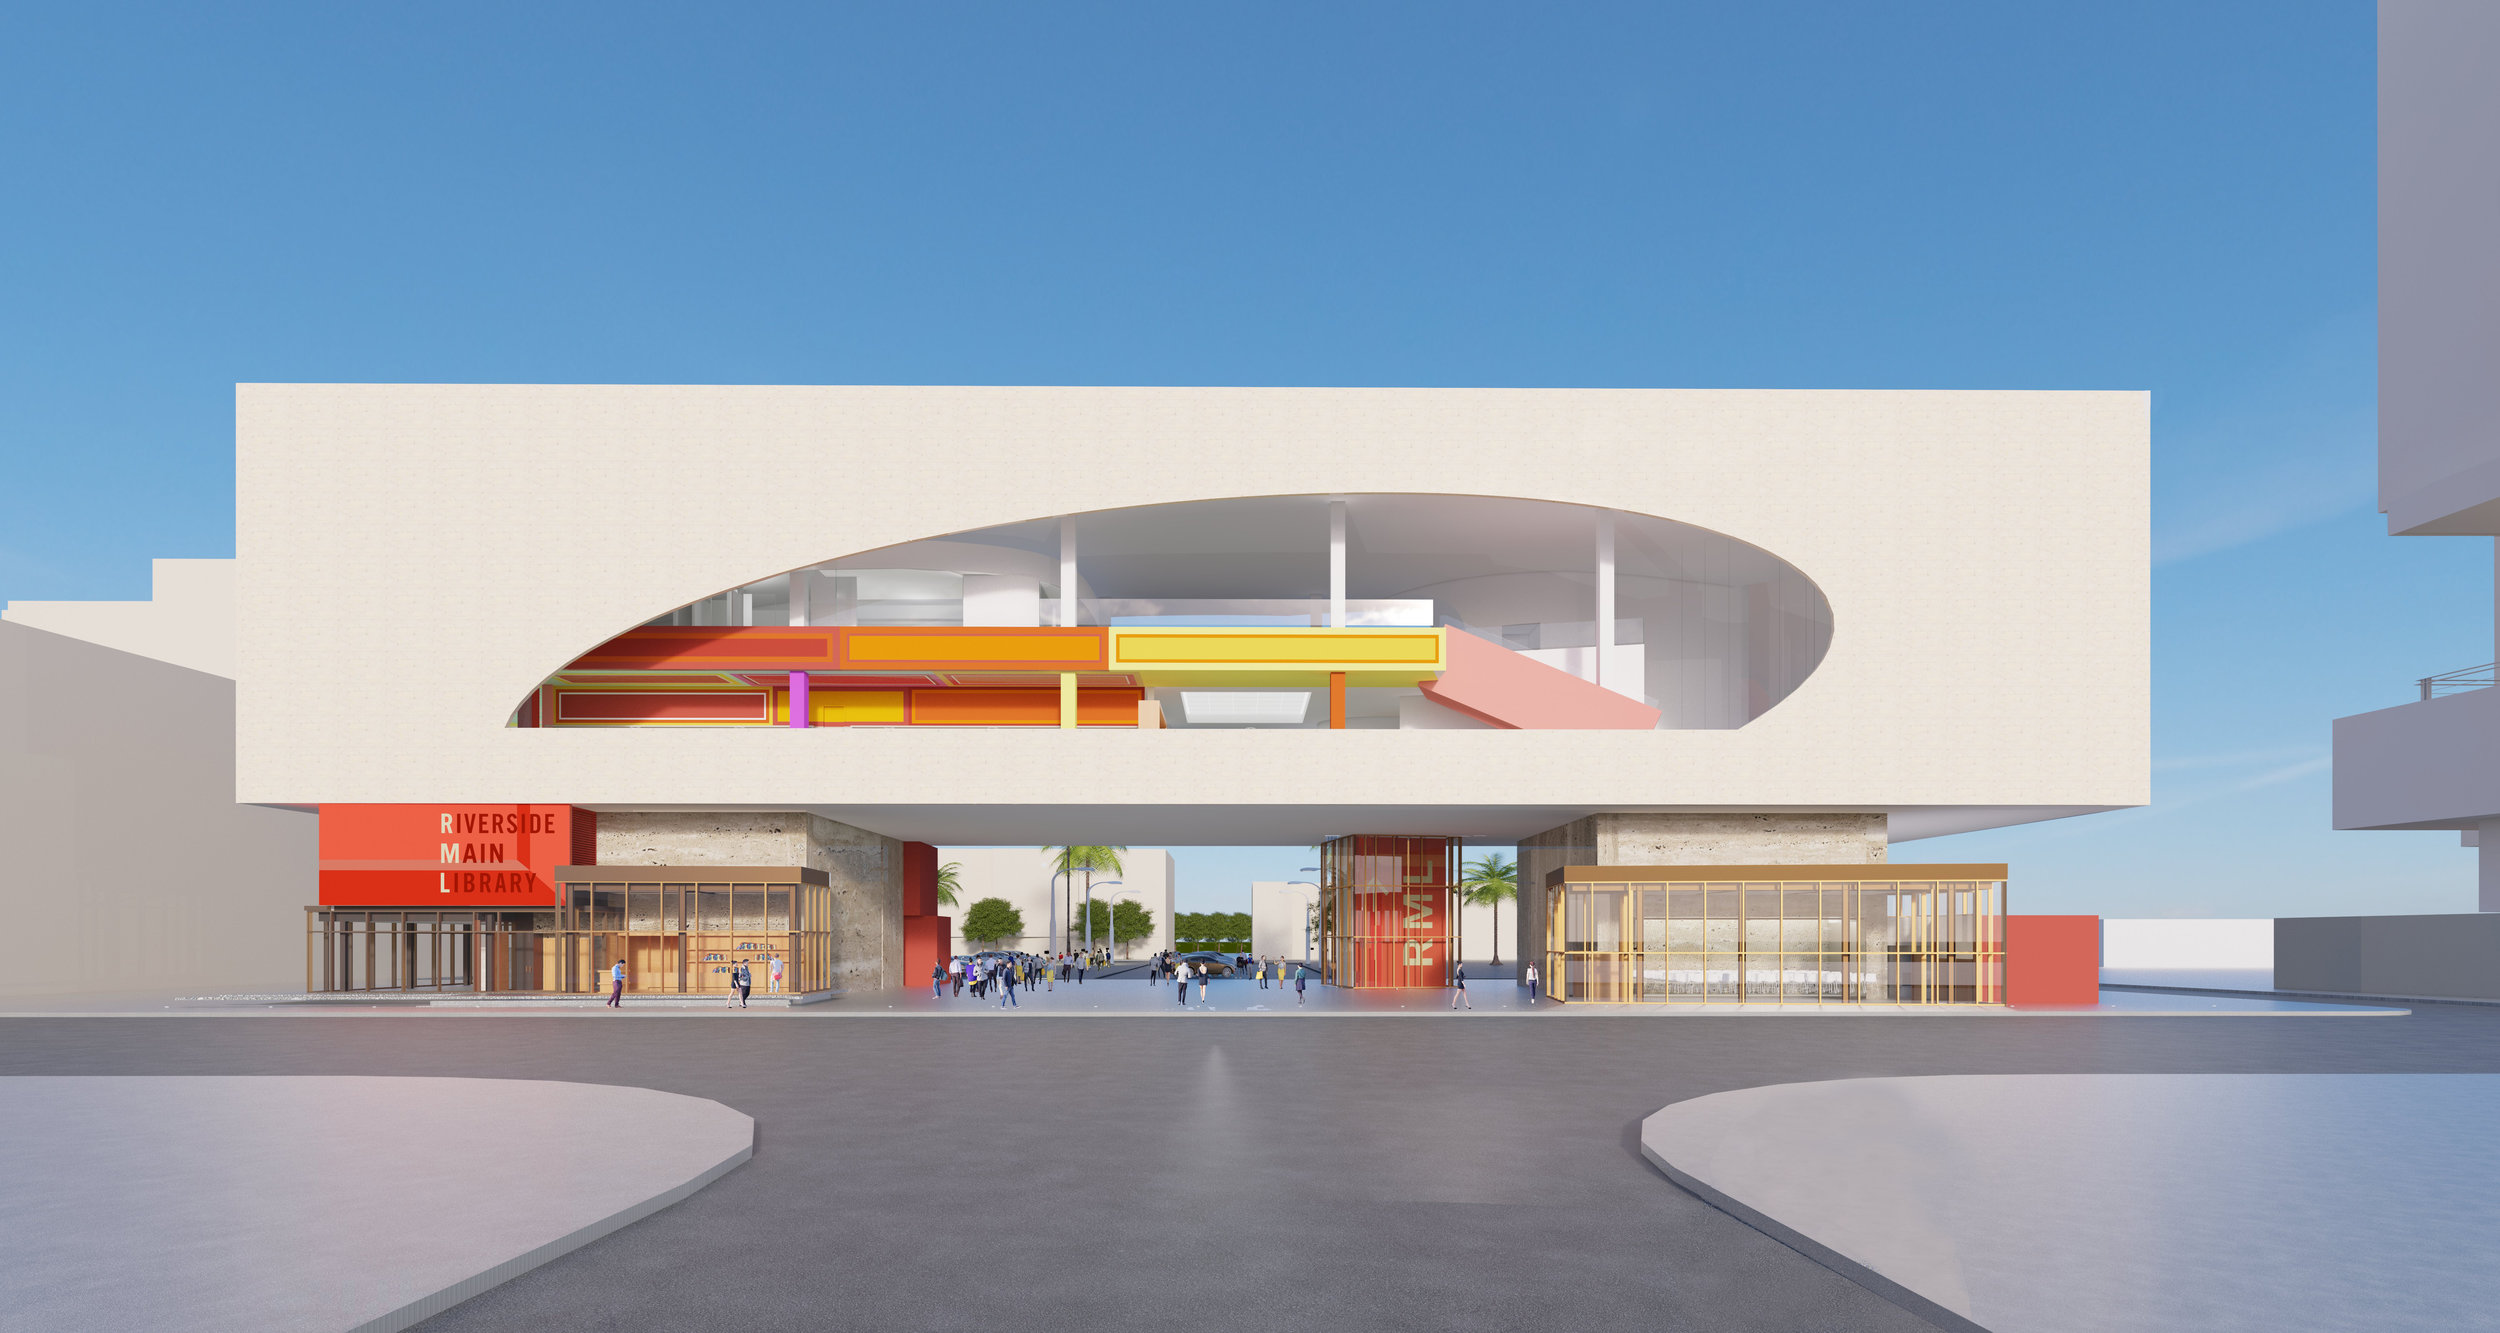 Riverside Main Library